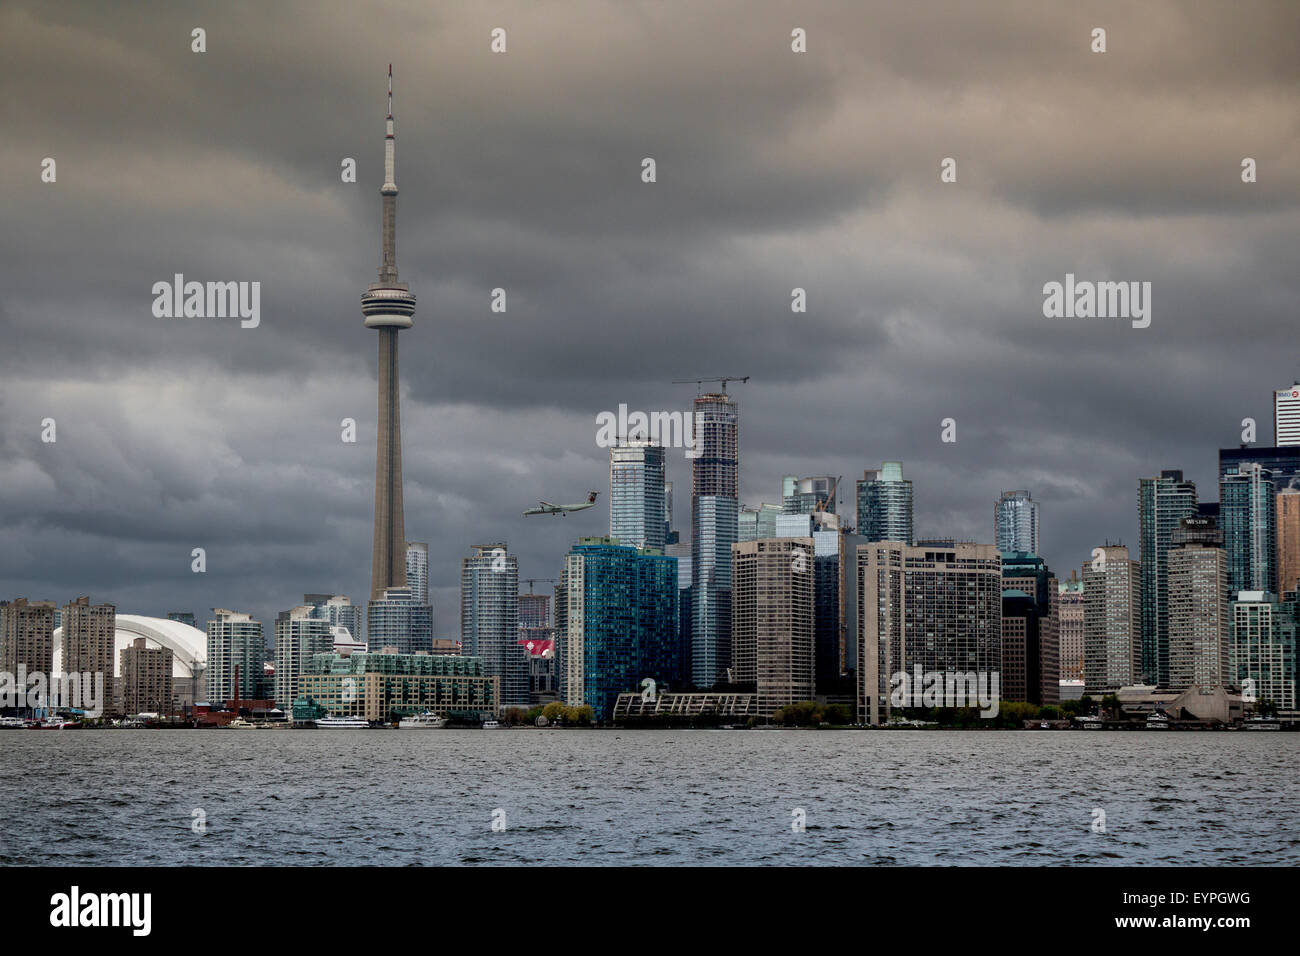 cityscape-of-the-city-of-toronto-over-a-stormy-day-with-plane-flying-EYPGWG.jpg